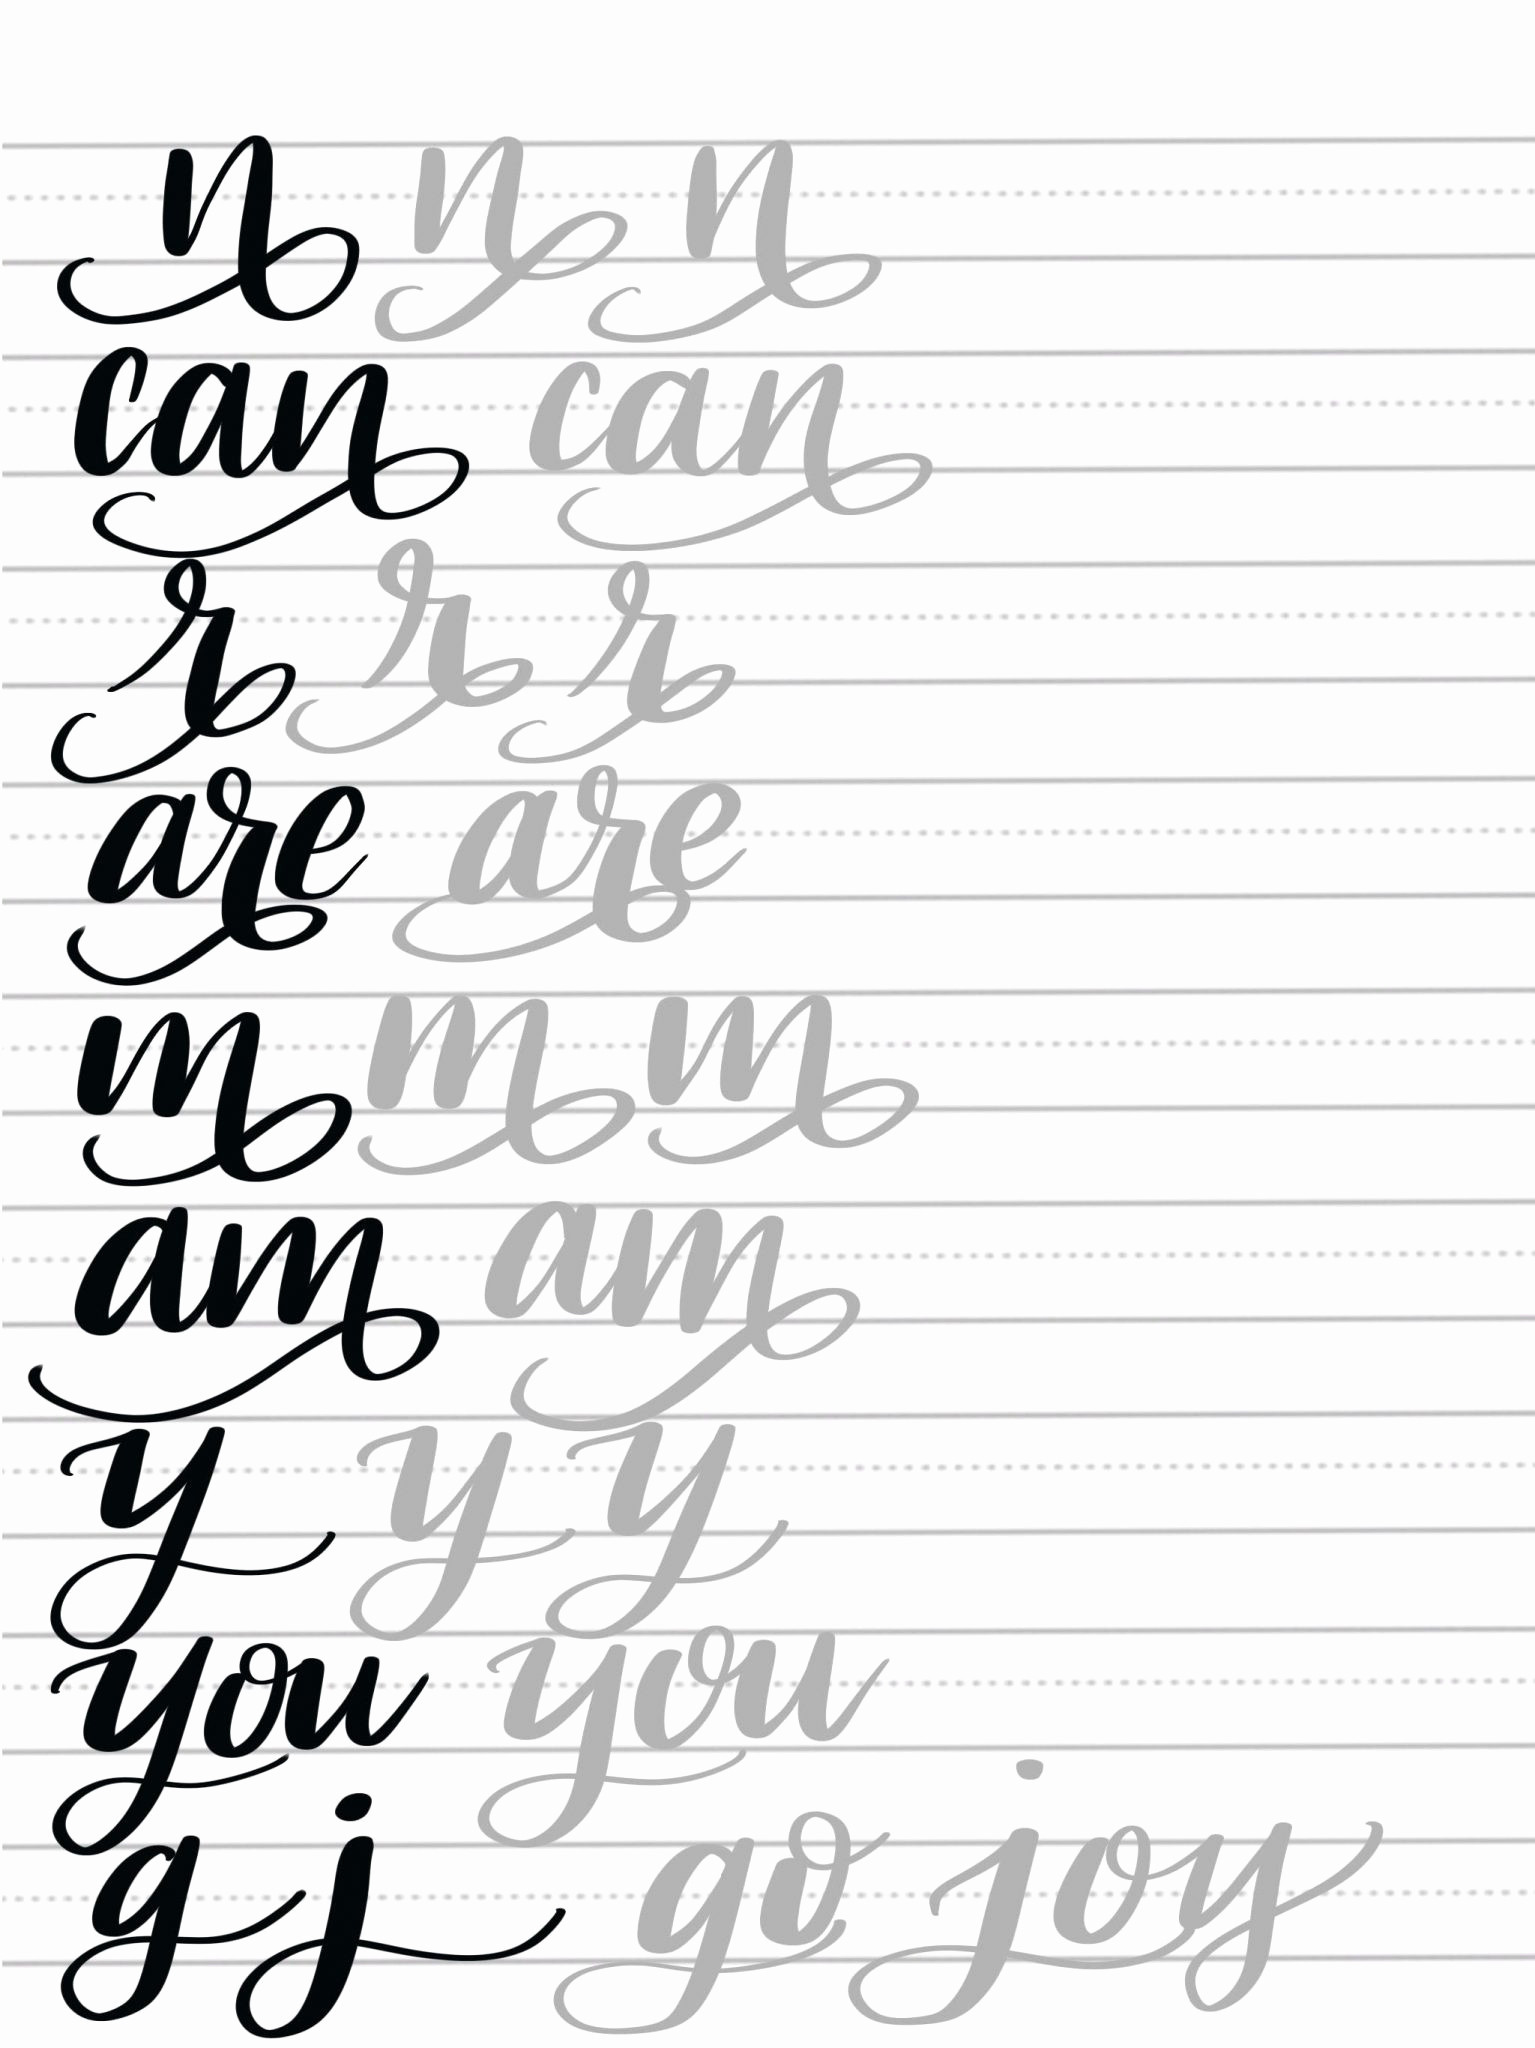 Free Calligraphy Worksheets Printable Free Calligraphy Worksheets to Educations Free Calligraphy